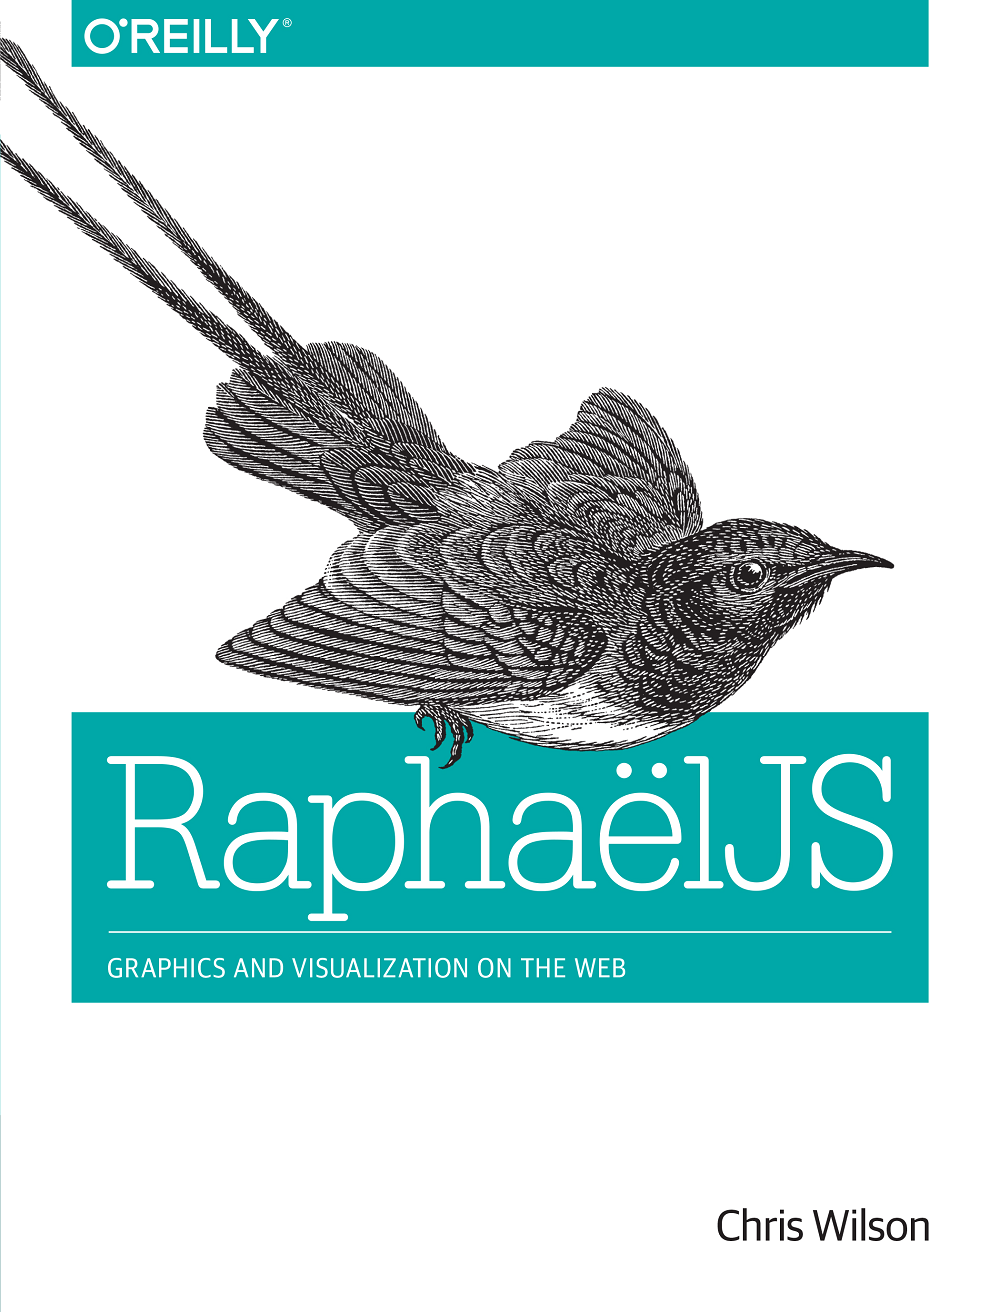 RaphaelJS: Graphics and Visualization on the Web